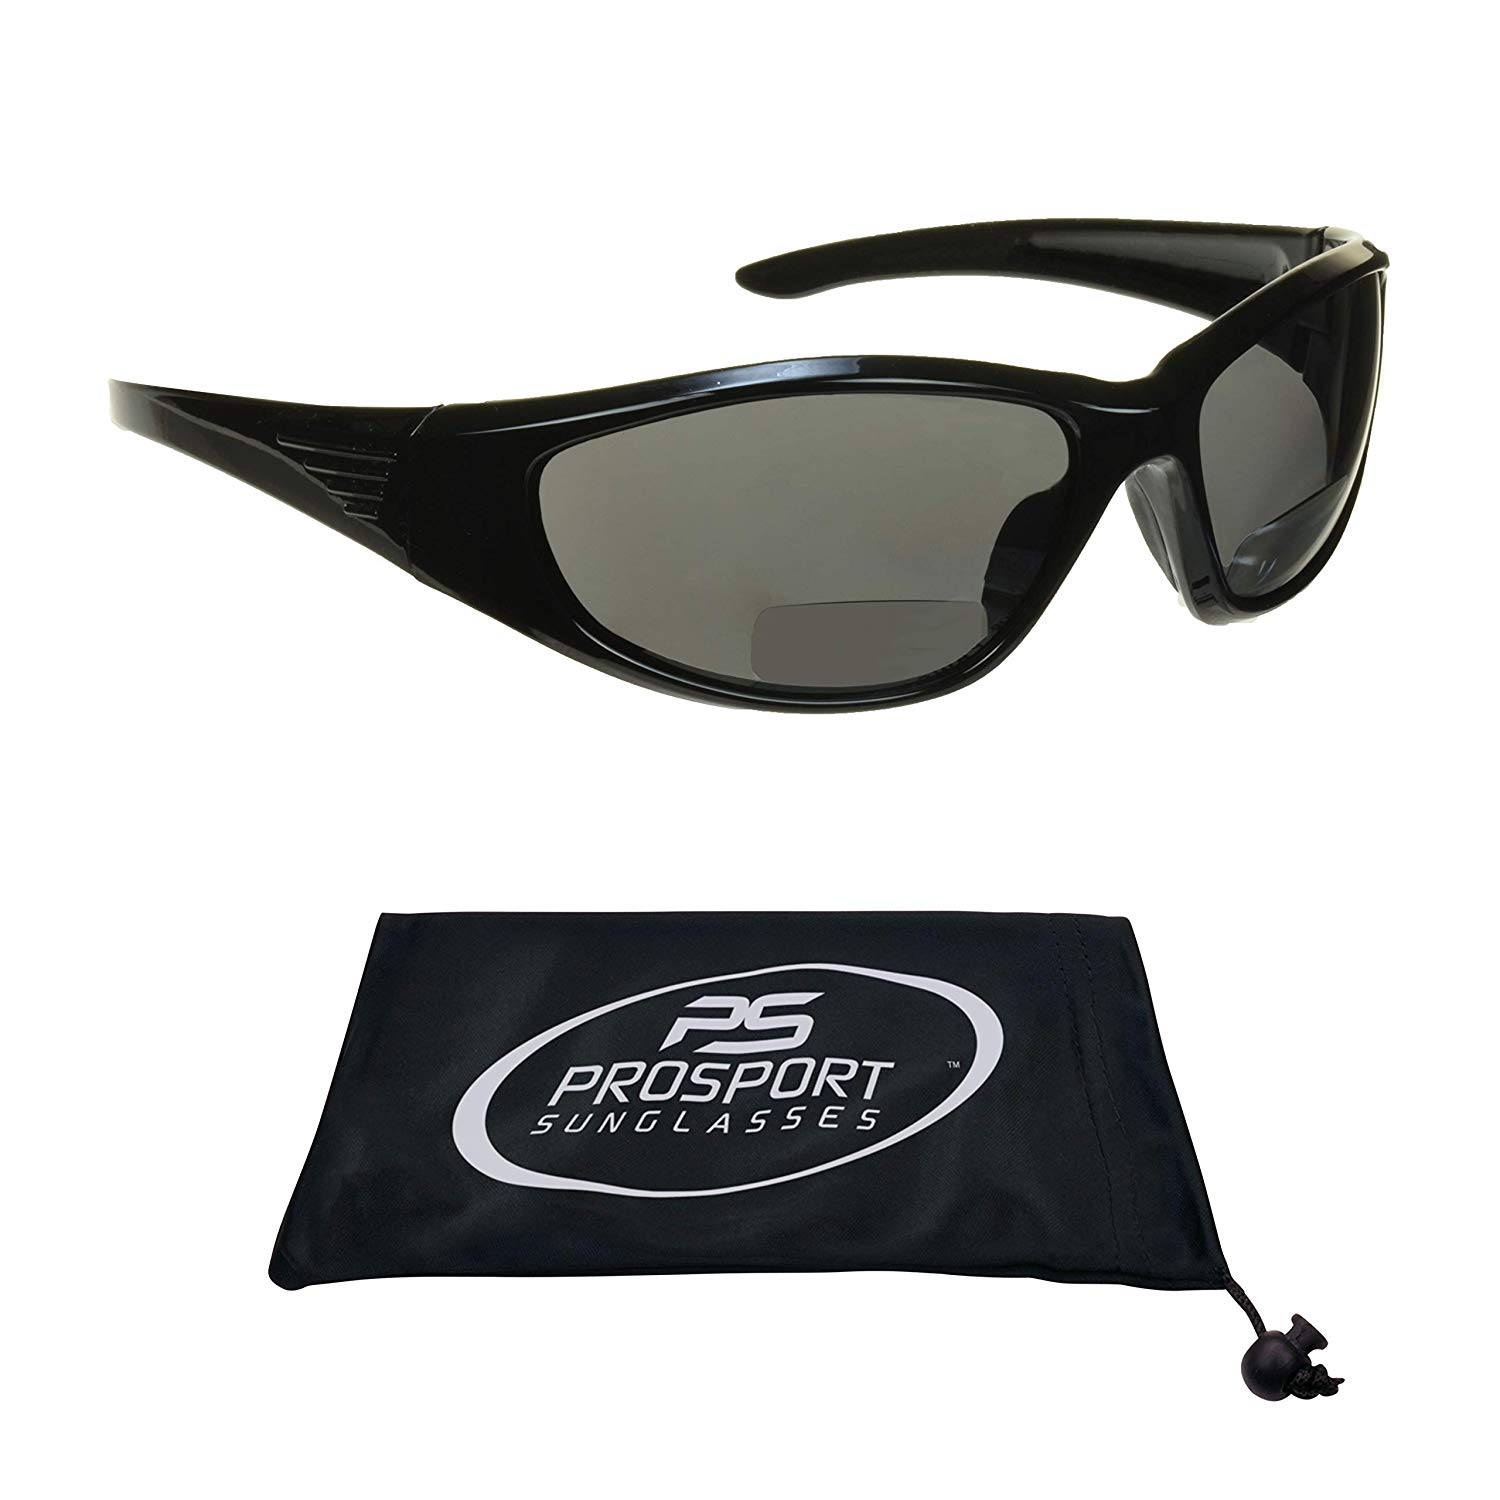 44213fdcc1 Get Quotations · Polarized Bifocal Sunglasses. Premium TAC Polarized Lenses  Overdrive